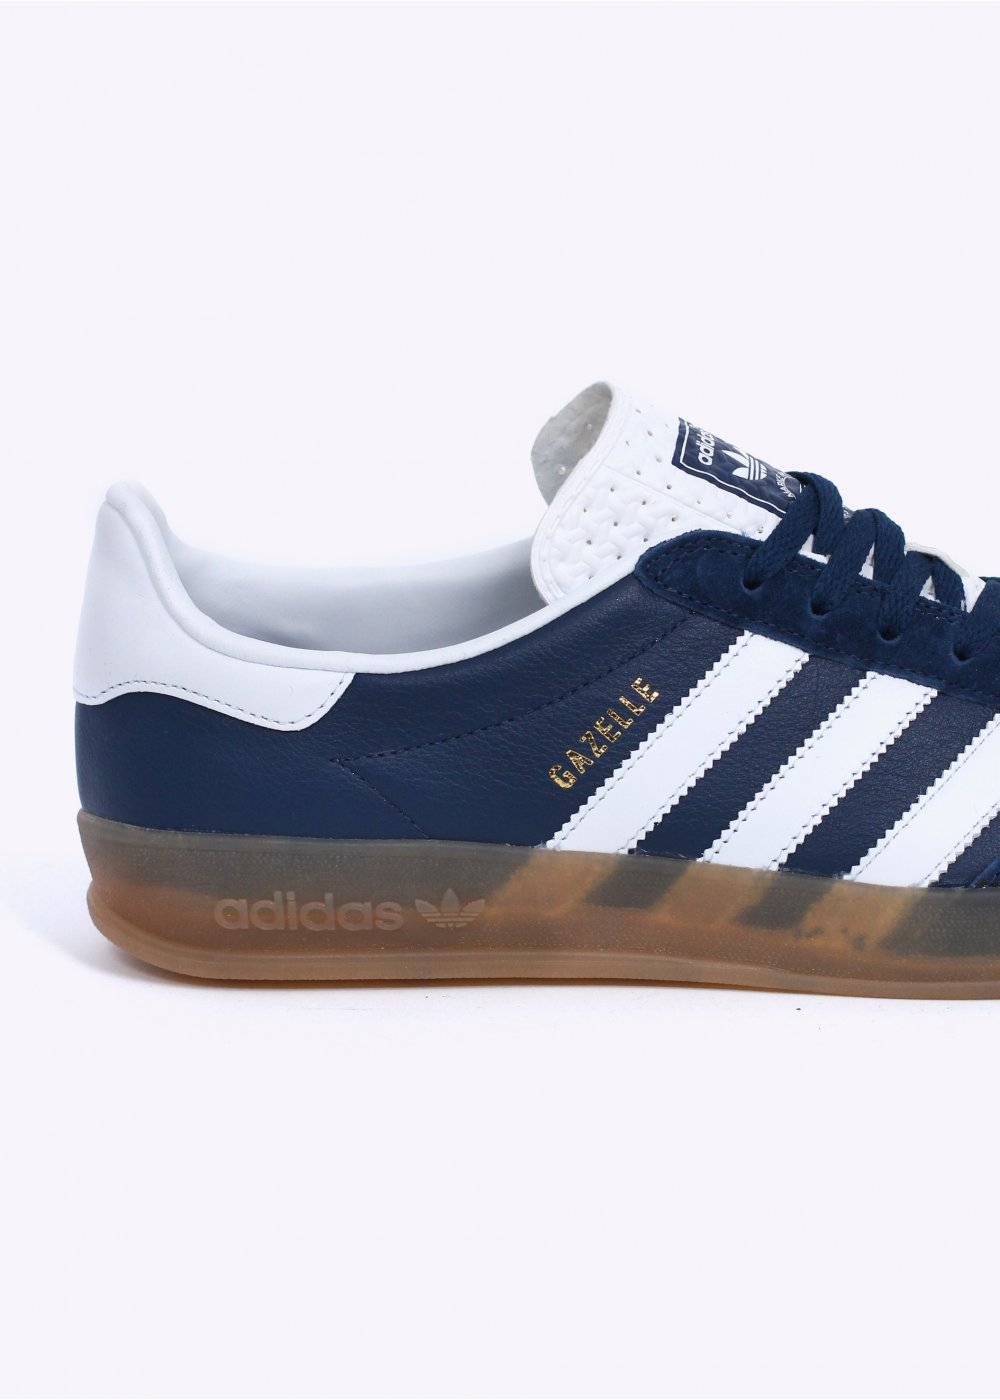 Originals Gazelle Gum Sole Indoor Sneaker